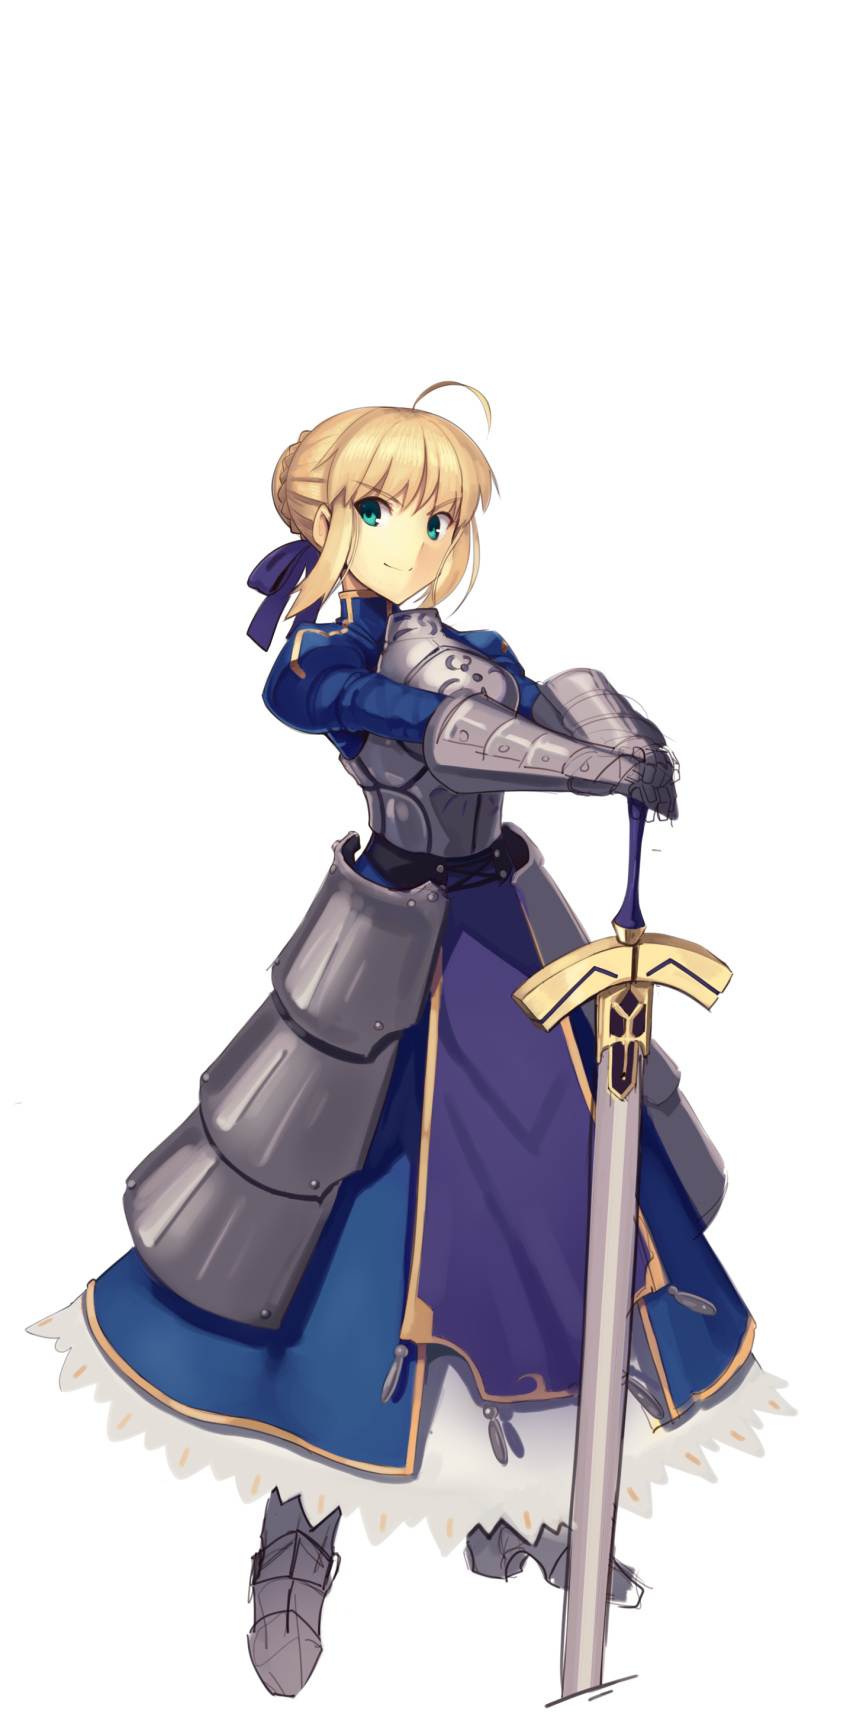 absurdres ahoge armor artoria_pendragon_(all) blonde_hair blue_dress boa_(brianoa) braid braided_bun breastplate closed_mouth dress excalibur fate/stay_night fate_(series) faulds full_body gauntlets green_eyes hair_ribbon hands_on_hilt highres juliet_sleeves legs_apart long_sleeves looking_at_viewer metal_boots planted_sword planted_weapon plate_armor pose puffy_sleeves purple_ribbon ribbon saber sidelocks smile standing sword transparent_background weapon